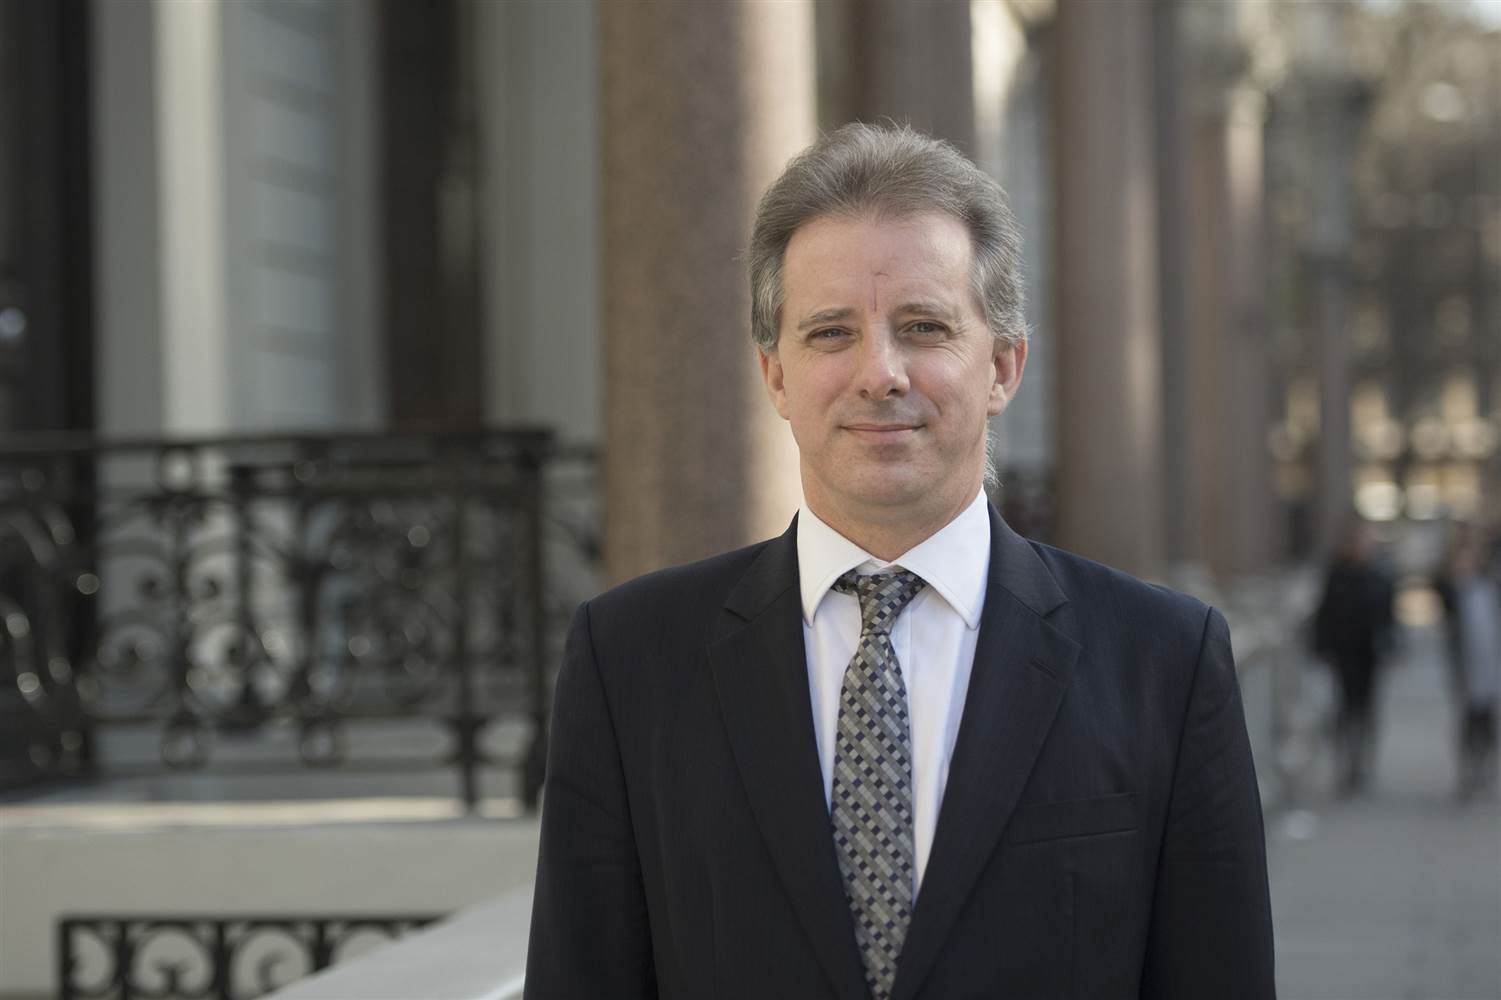 FiftyFifty Christopher Steele Is Unsure About Trump Golden Showers Tape